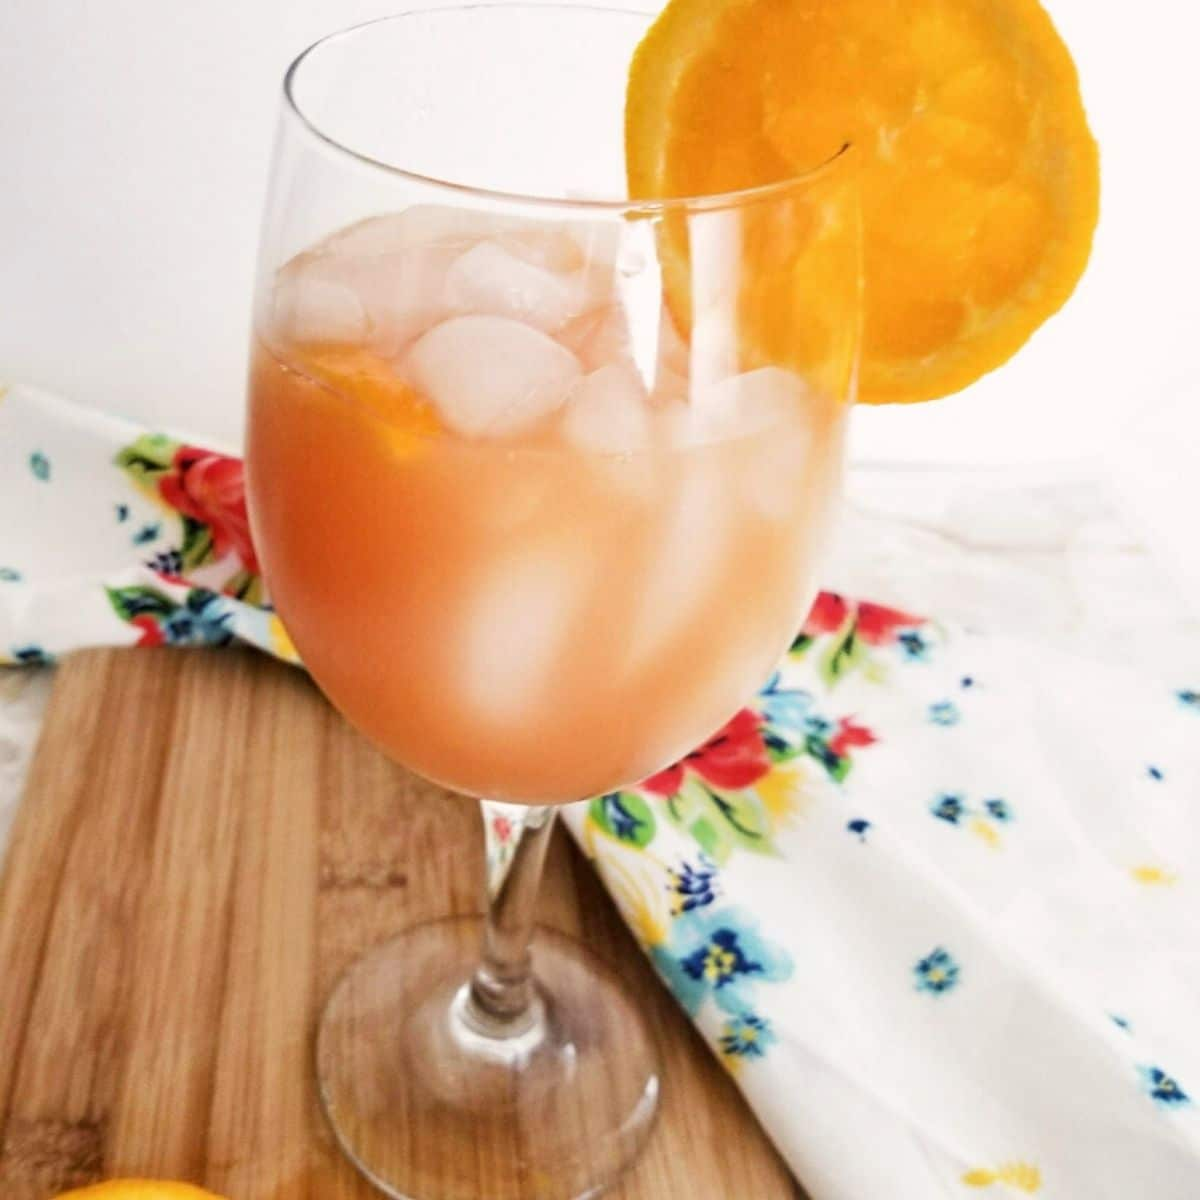 A wine glass filled with punch garnished with an orange slice.